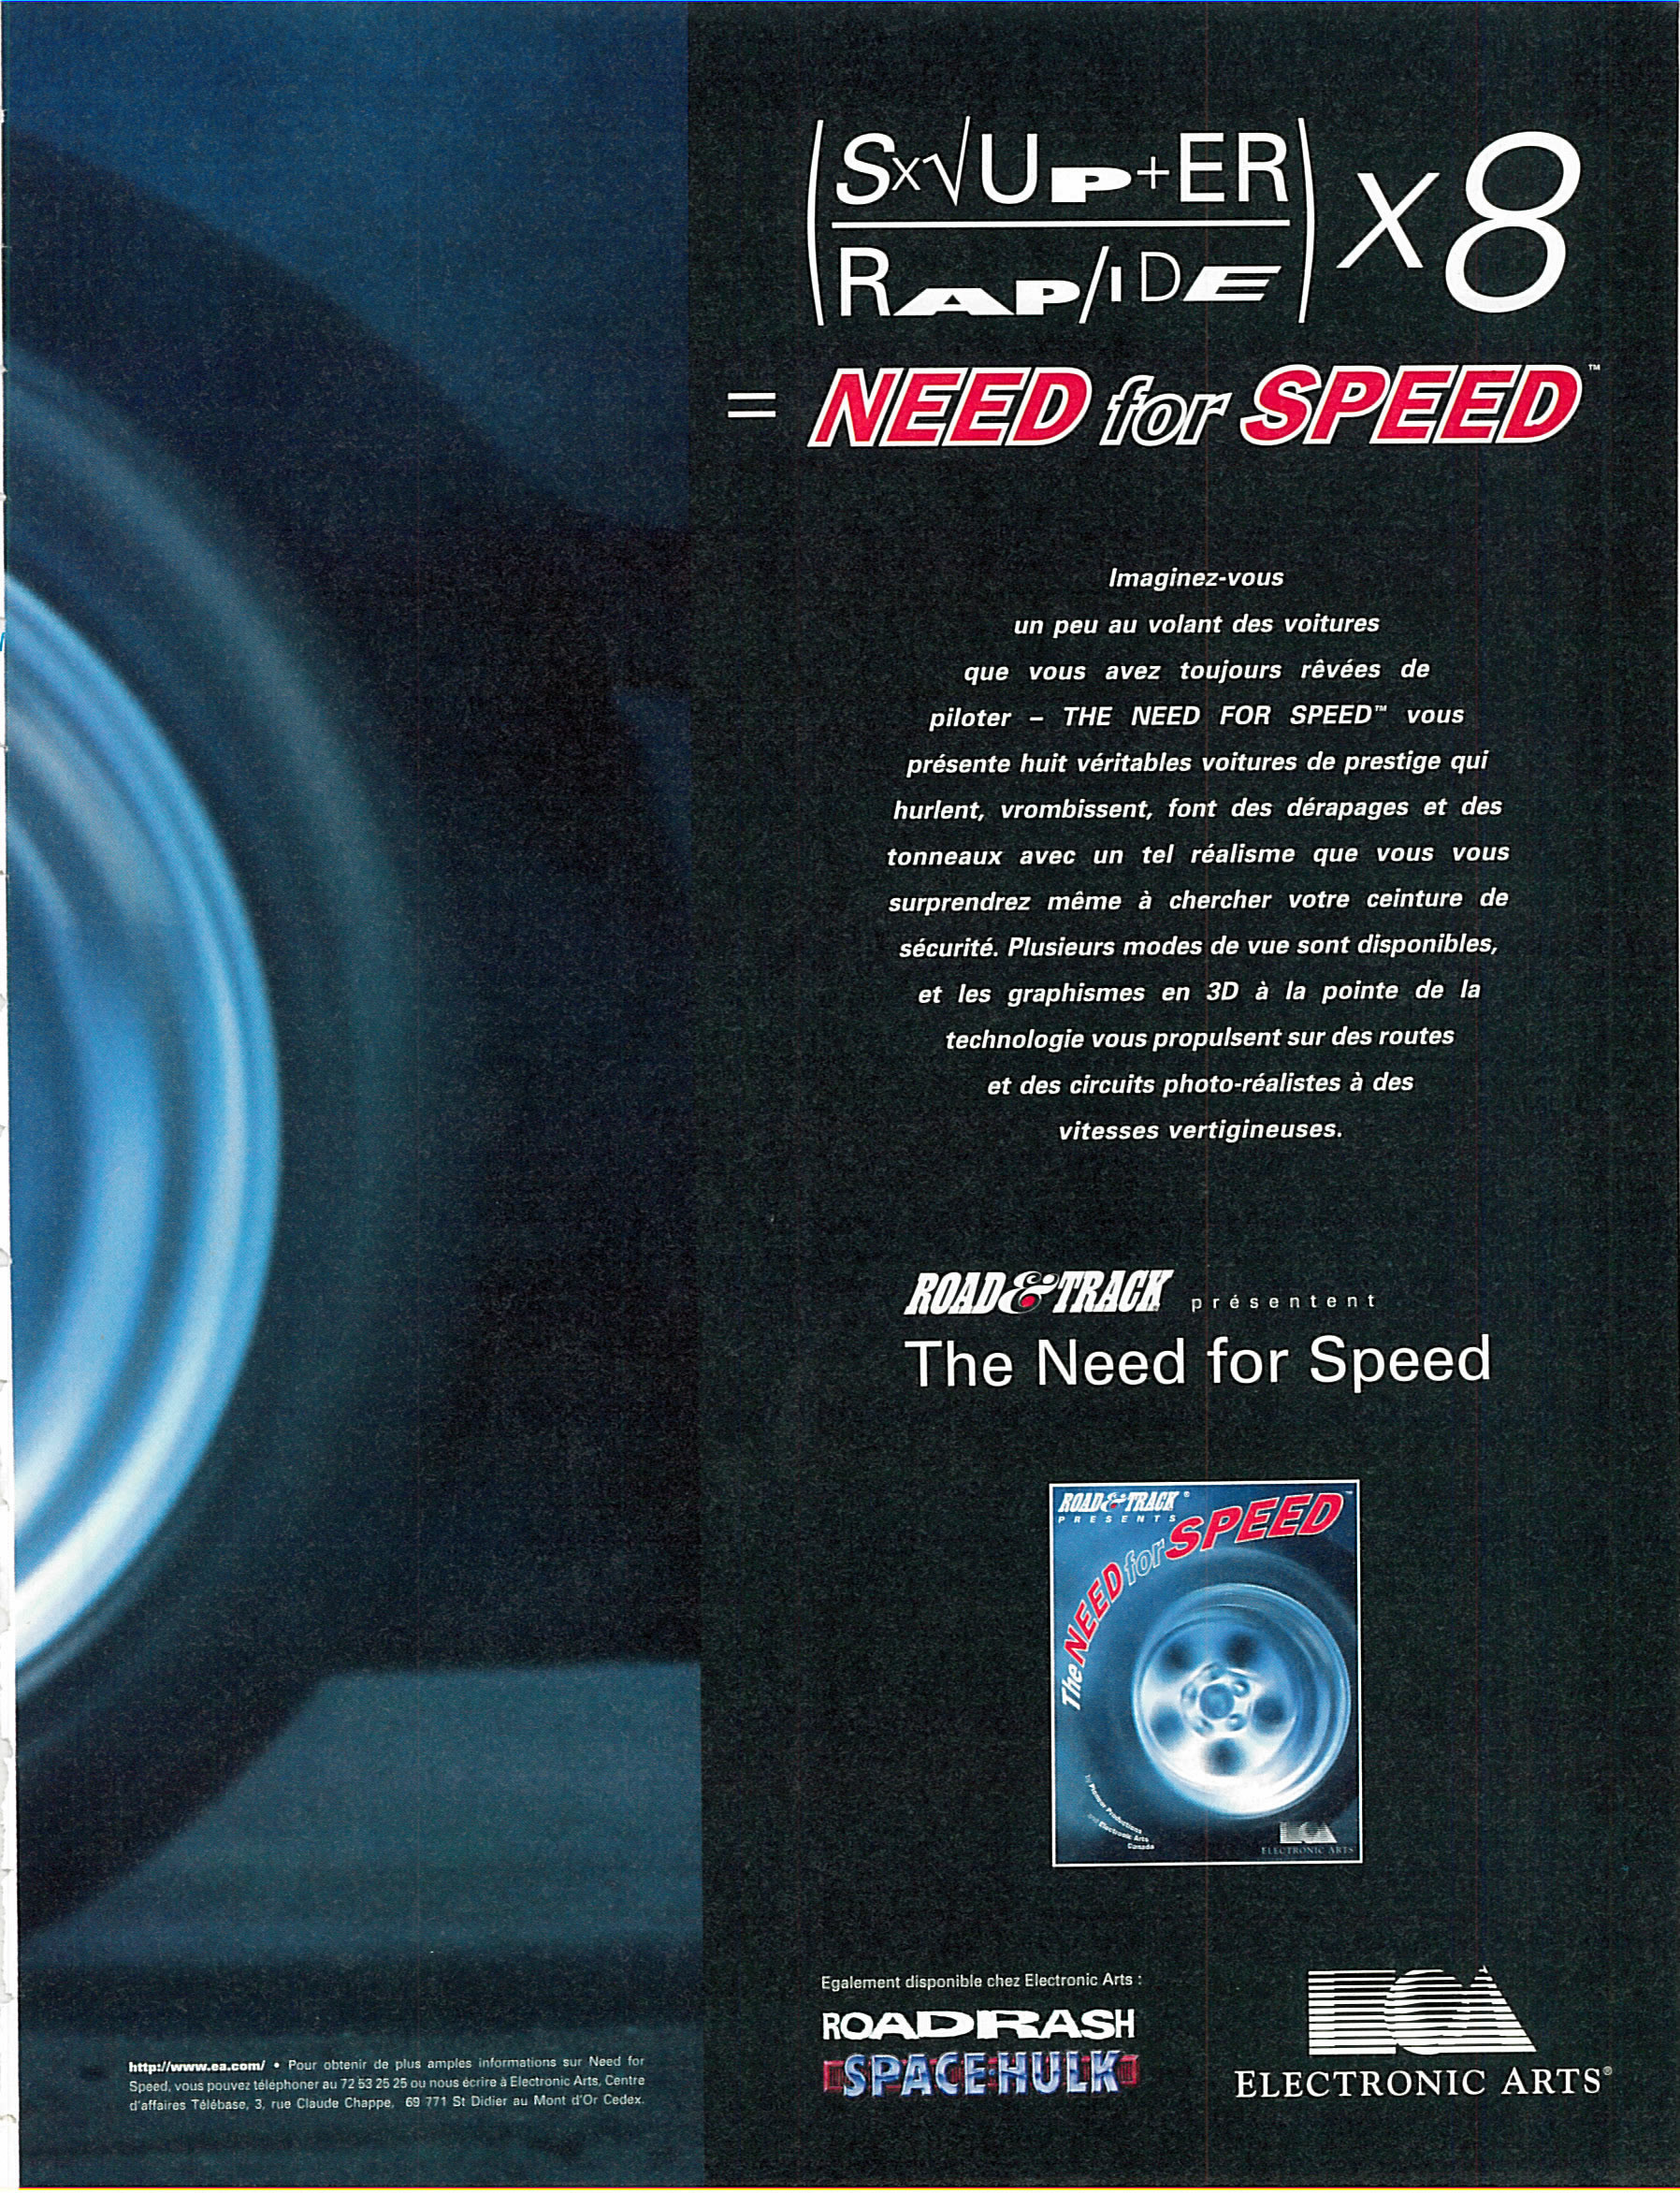 Need for speed Playmag%20002%20-%20Page%20111%20(avril%201996)